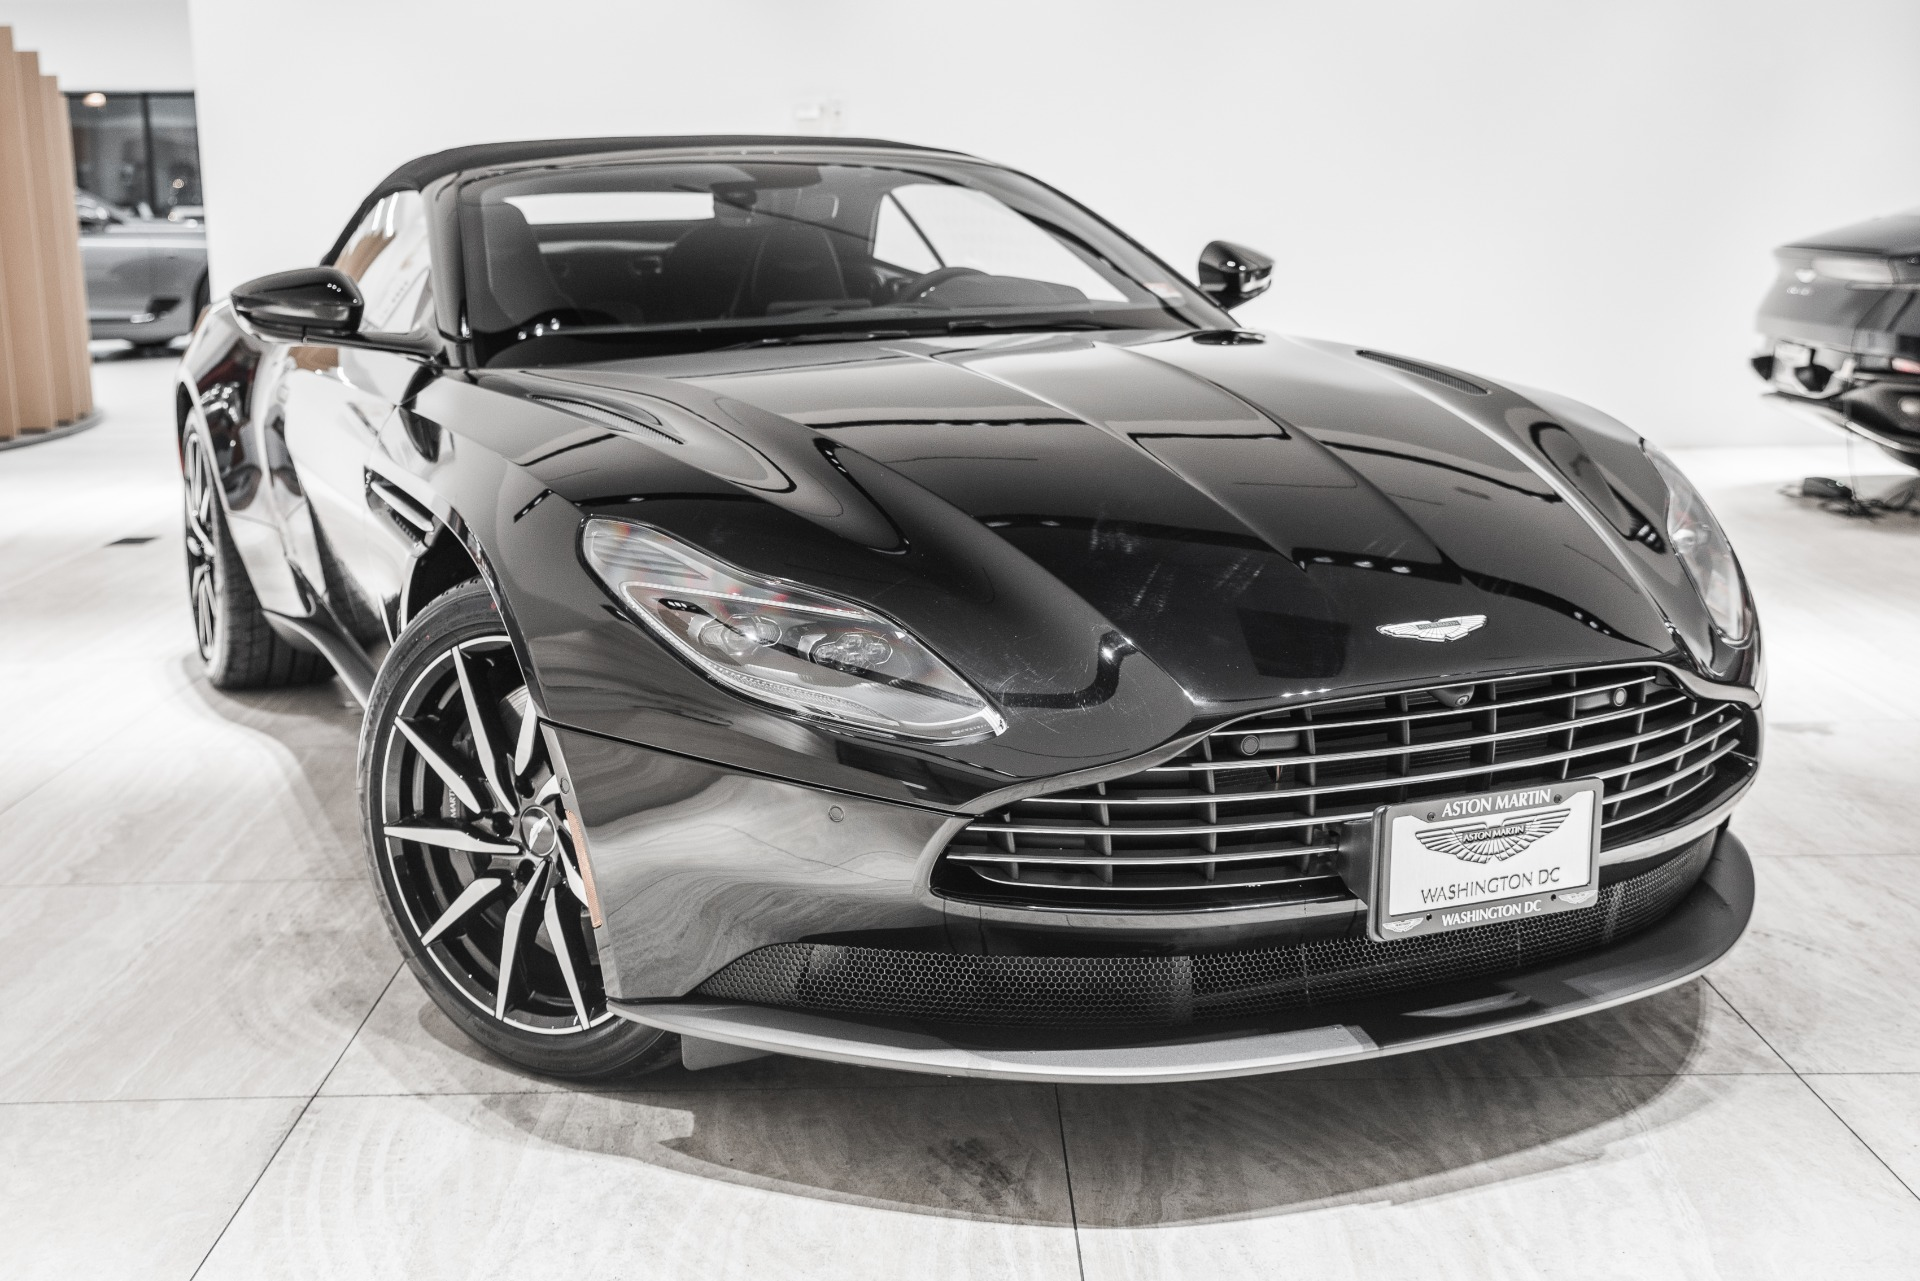 2020 Aston Martin Db11 Volante Stock 20nm08460 For Sale Near Vienna Va Va Aston Martin Dealer For Sale In Vienna Va 20nm08460 Exclusive Automotive Group